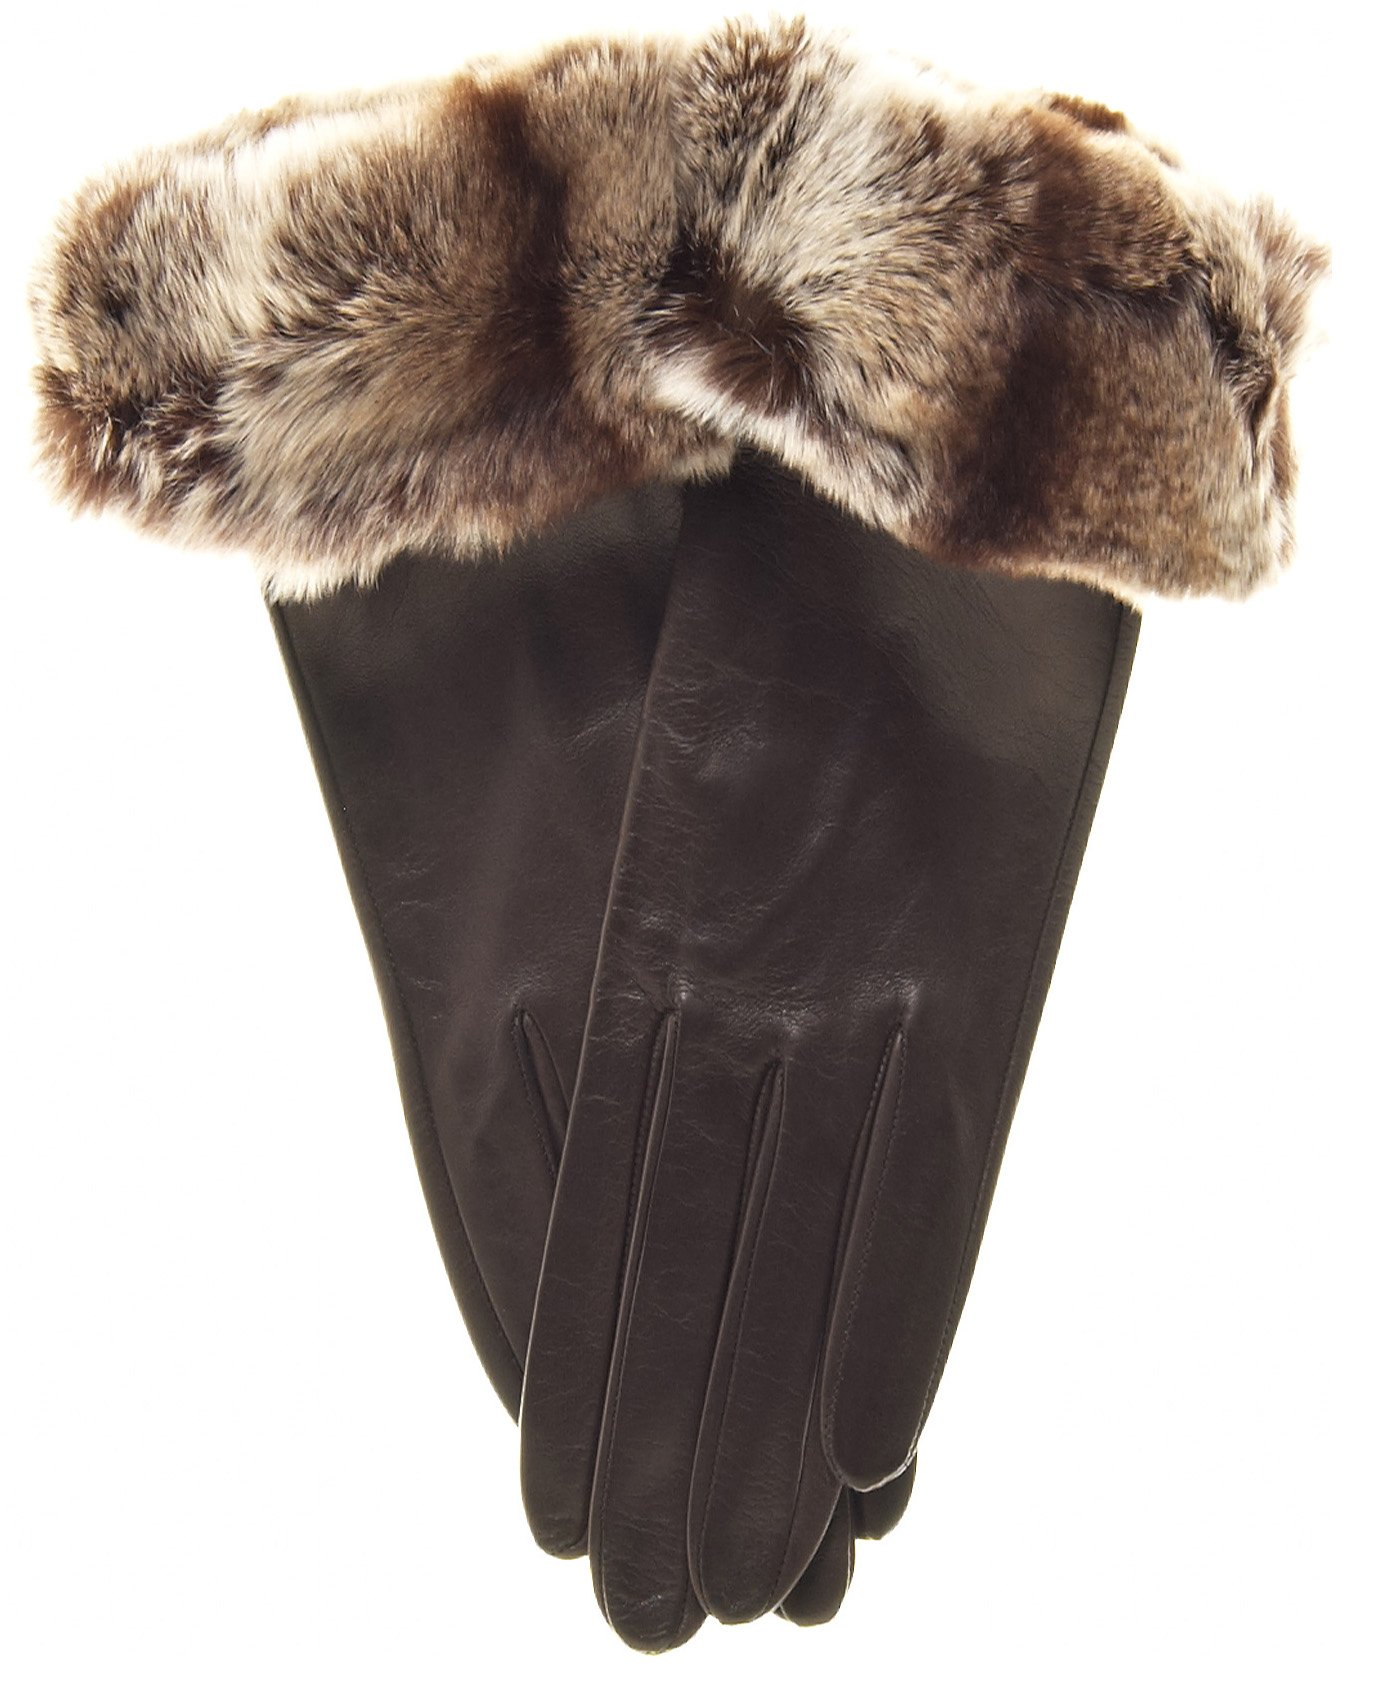 Fratelli Orsini Women's Orylag Rabbit Fur Cuff Cashmere Lined Leather Gloves Size 8 1/2 Color Brown